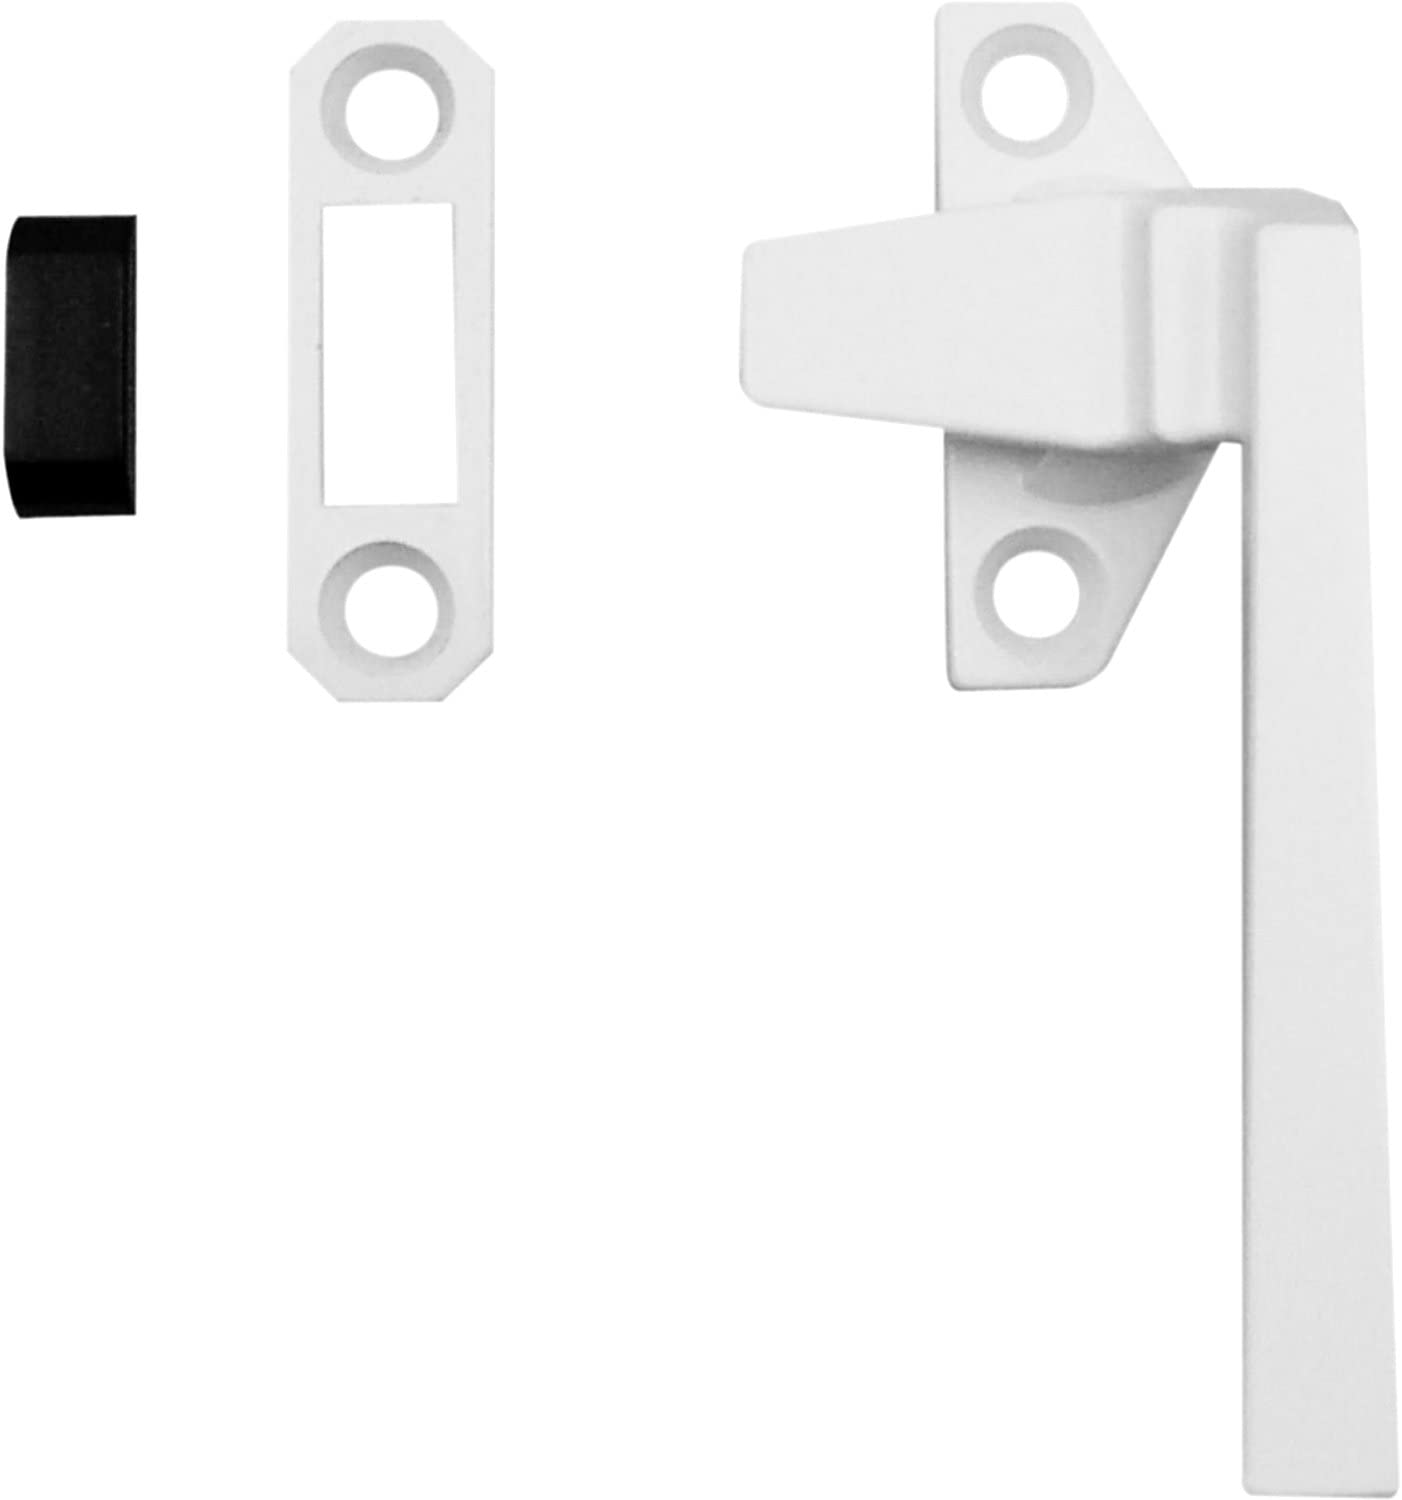 Prime-Line Products H 3821 Off-Set Base Casement Locking Handle, White